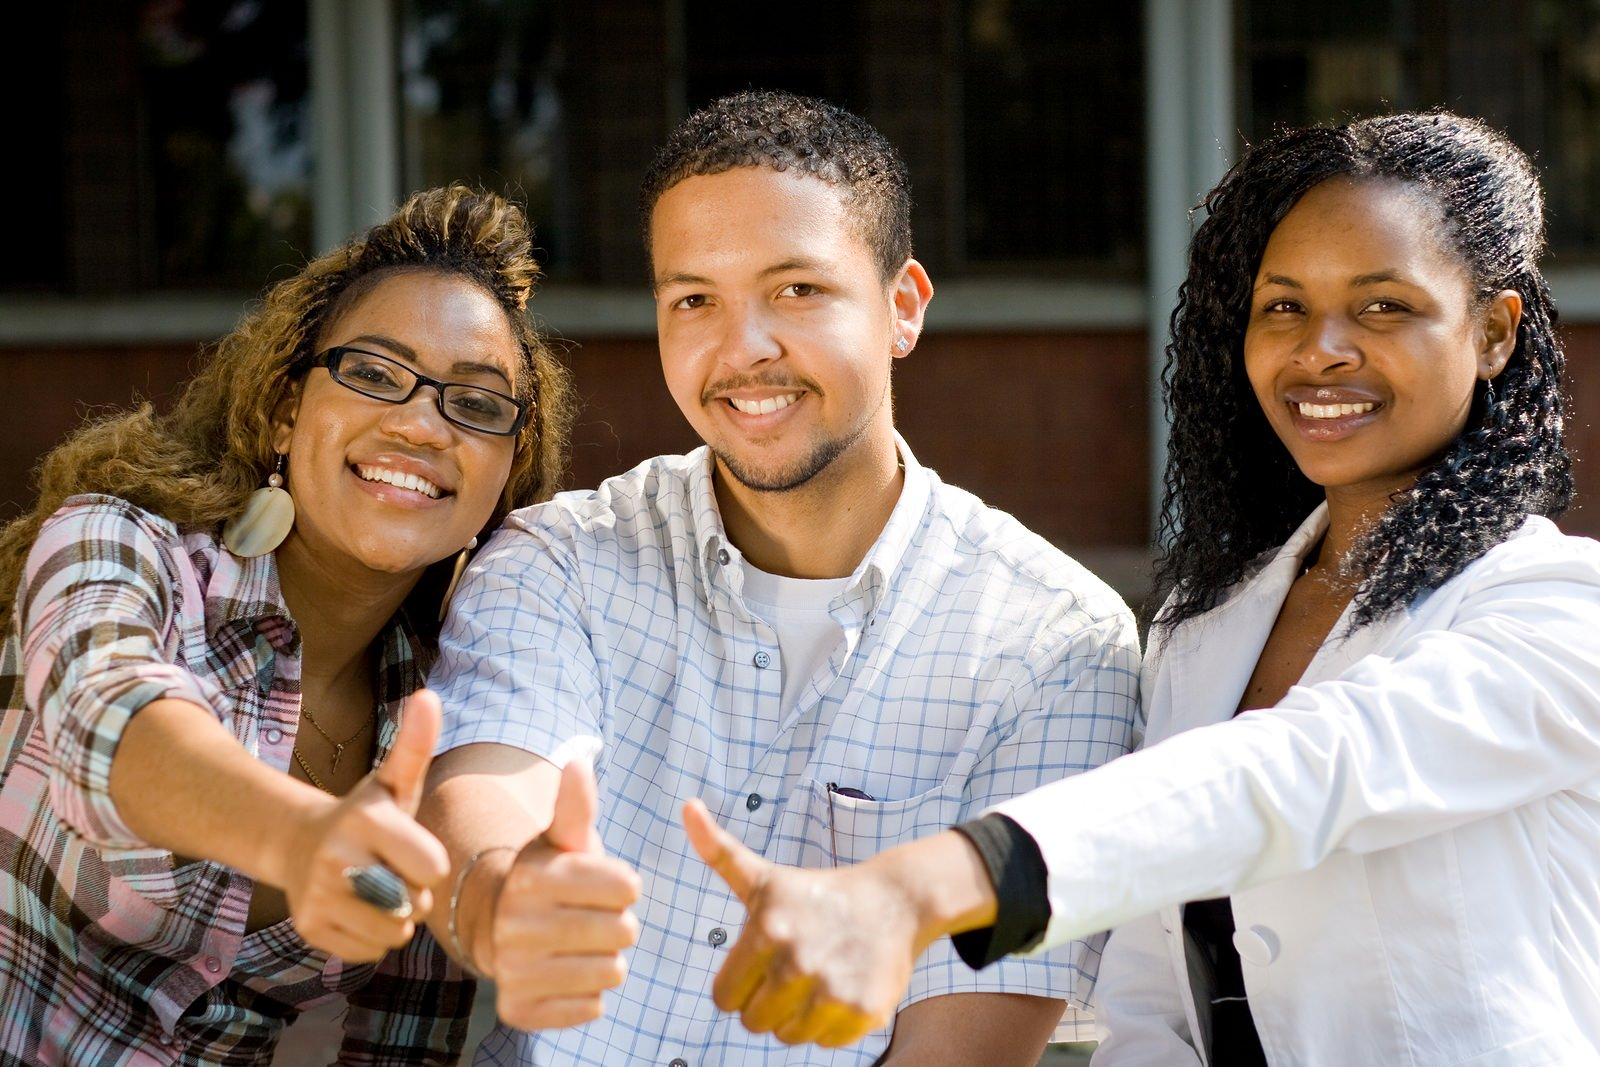 african american minority group essay Among many of the ethnic groups that experienced a combination of segregation, racism, and prejudice african americans is one of the few that is still faced with one or more forms of discrimination today.